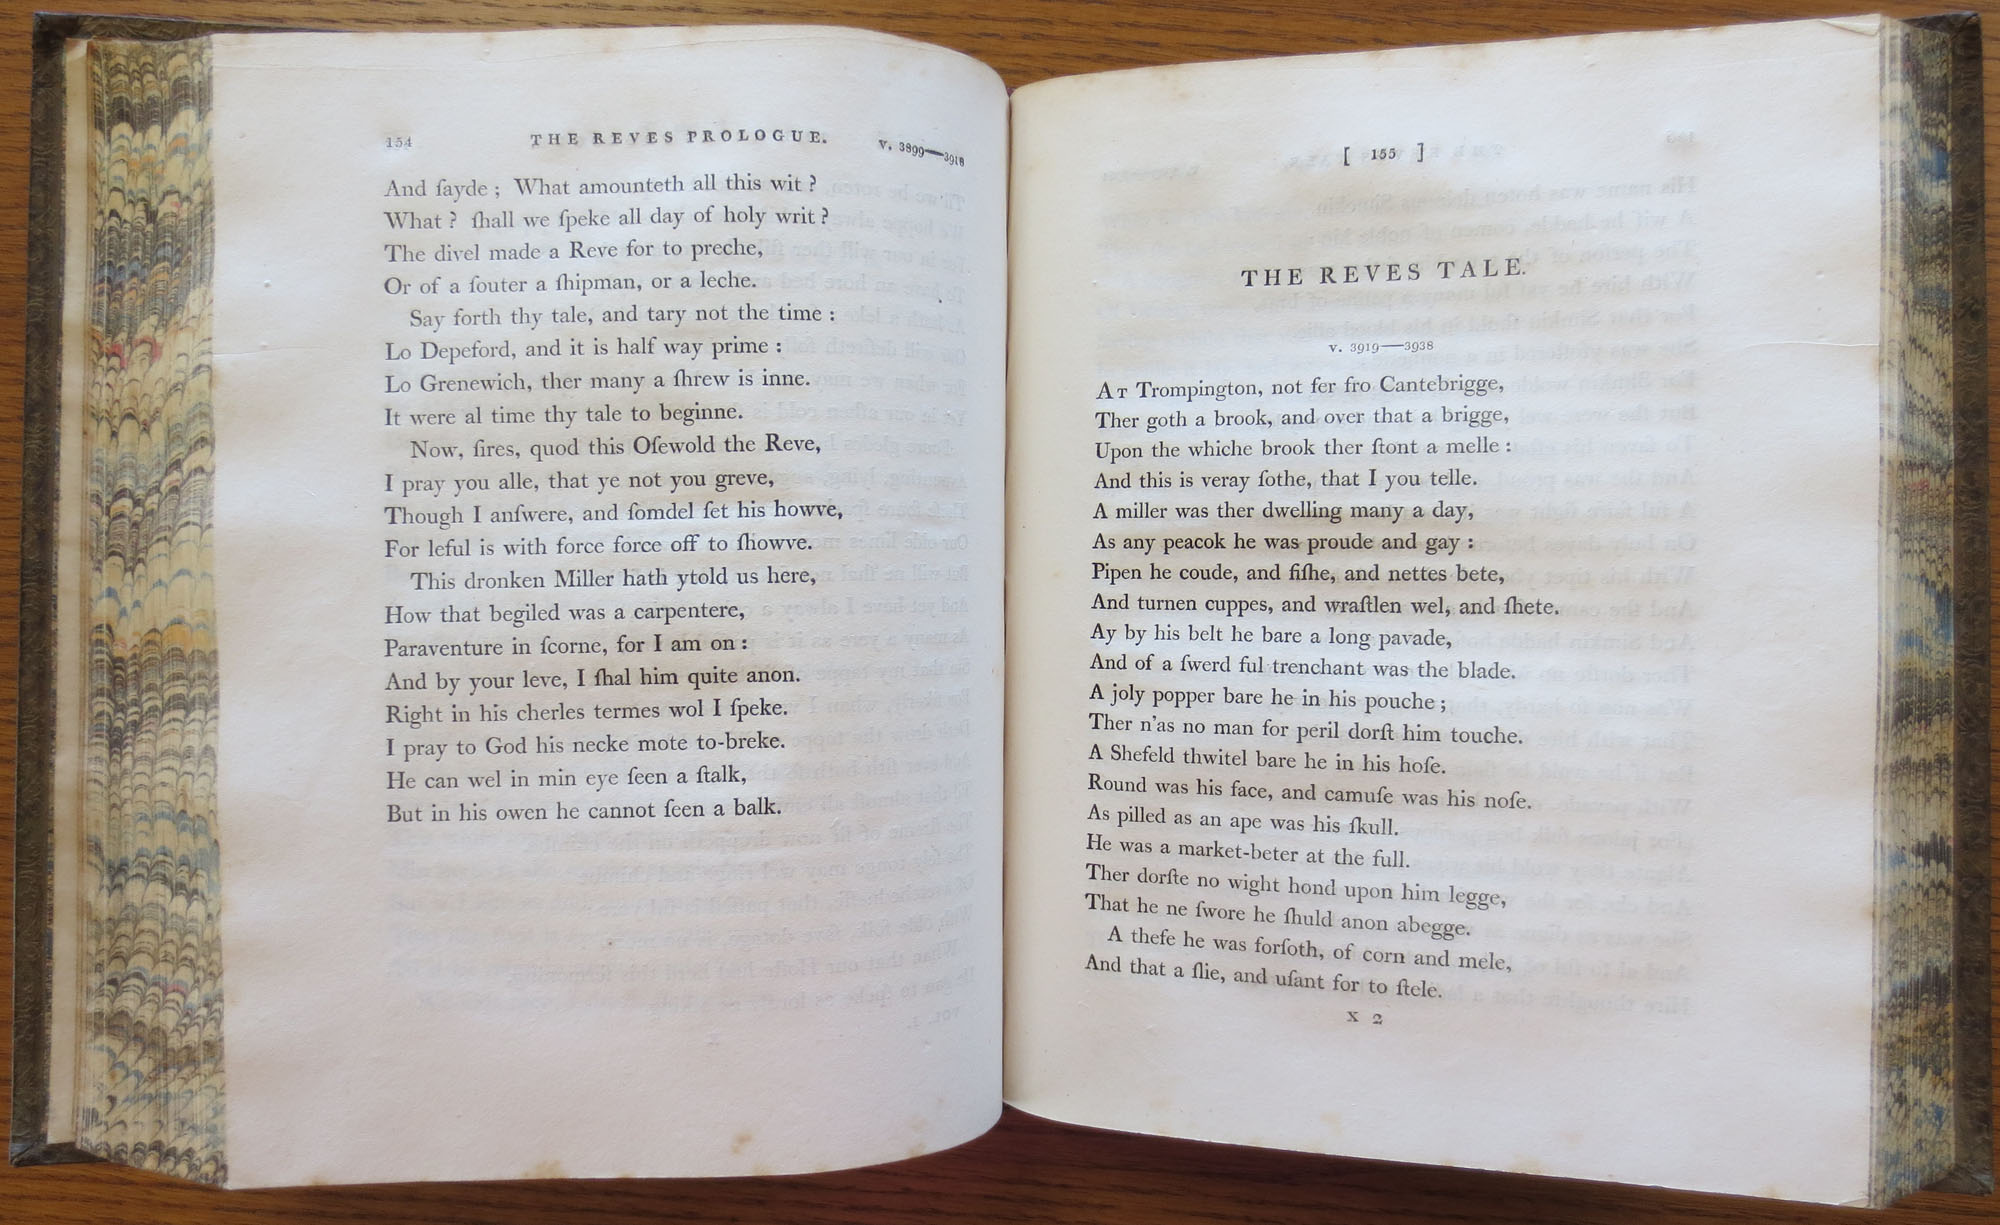 the canterbury tales clarendon press 1798 · the classic text the canterbury tales of chaucer